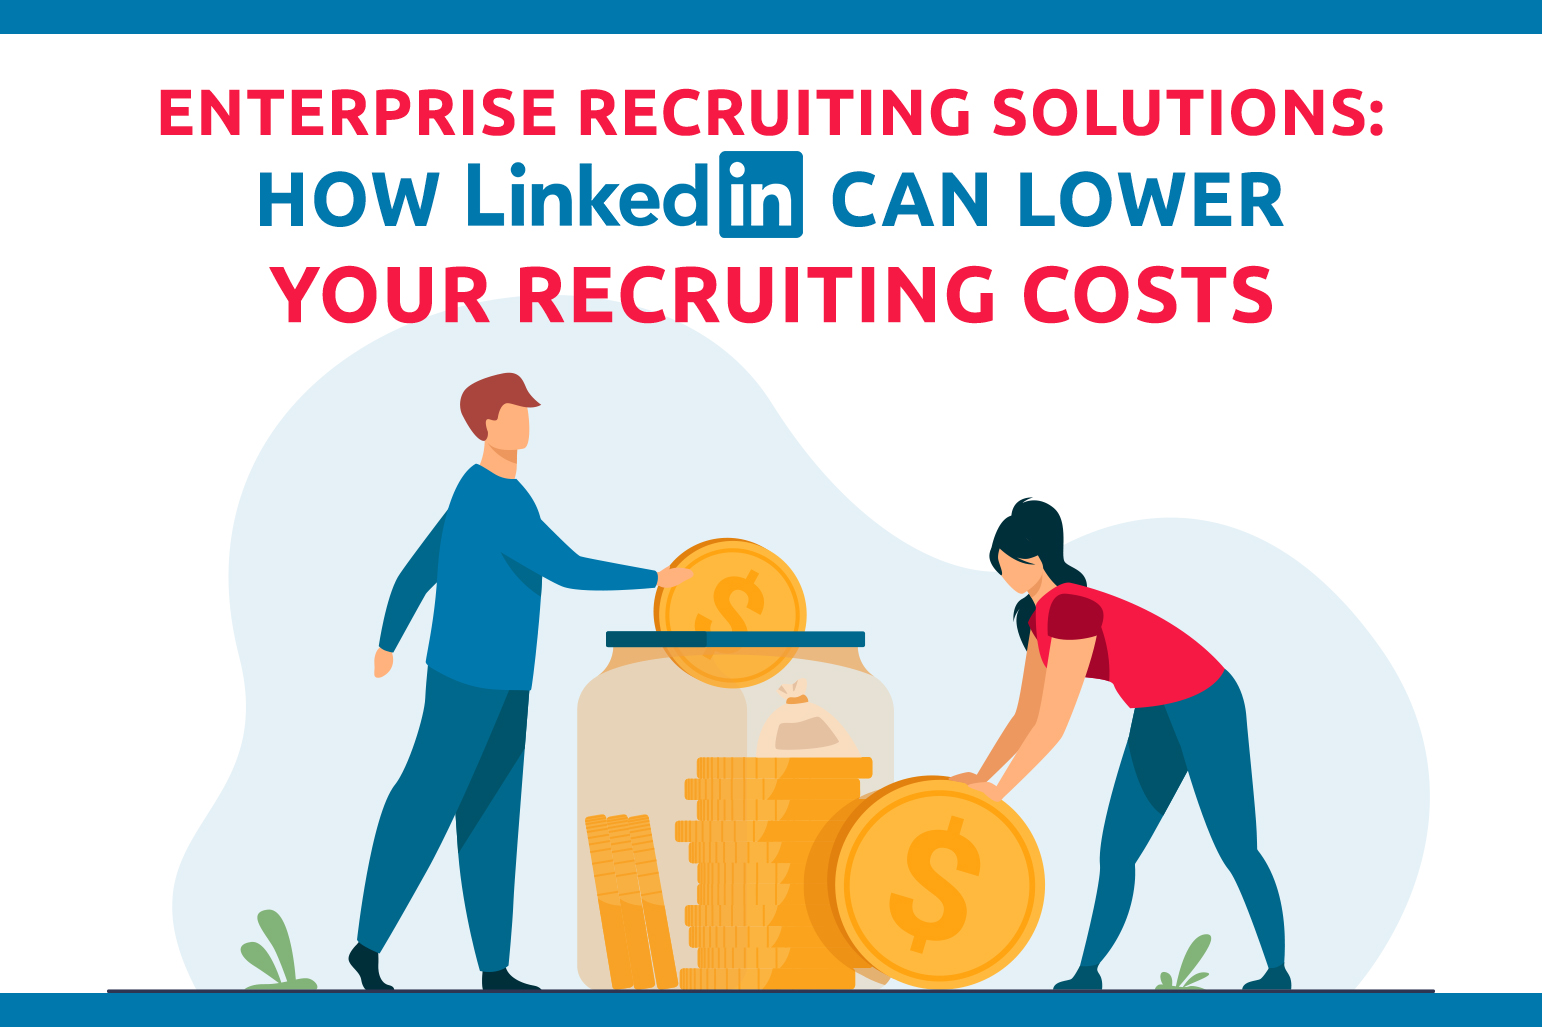 Enterprise Recruiting Solutions: How LinkedIn Can Lower Your Recruiting Costs